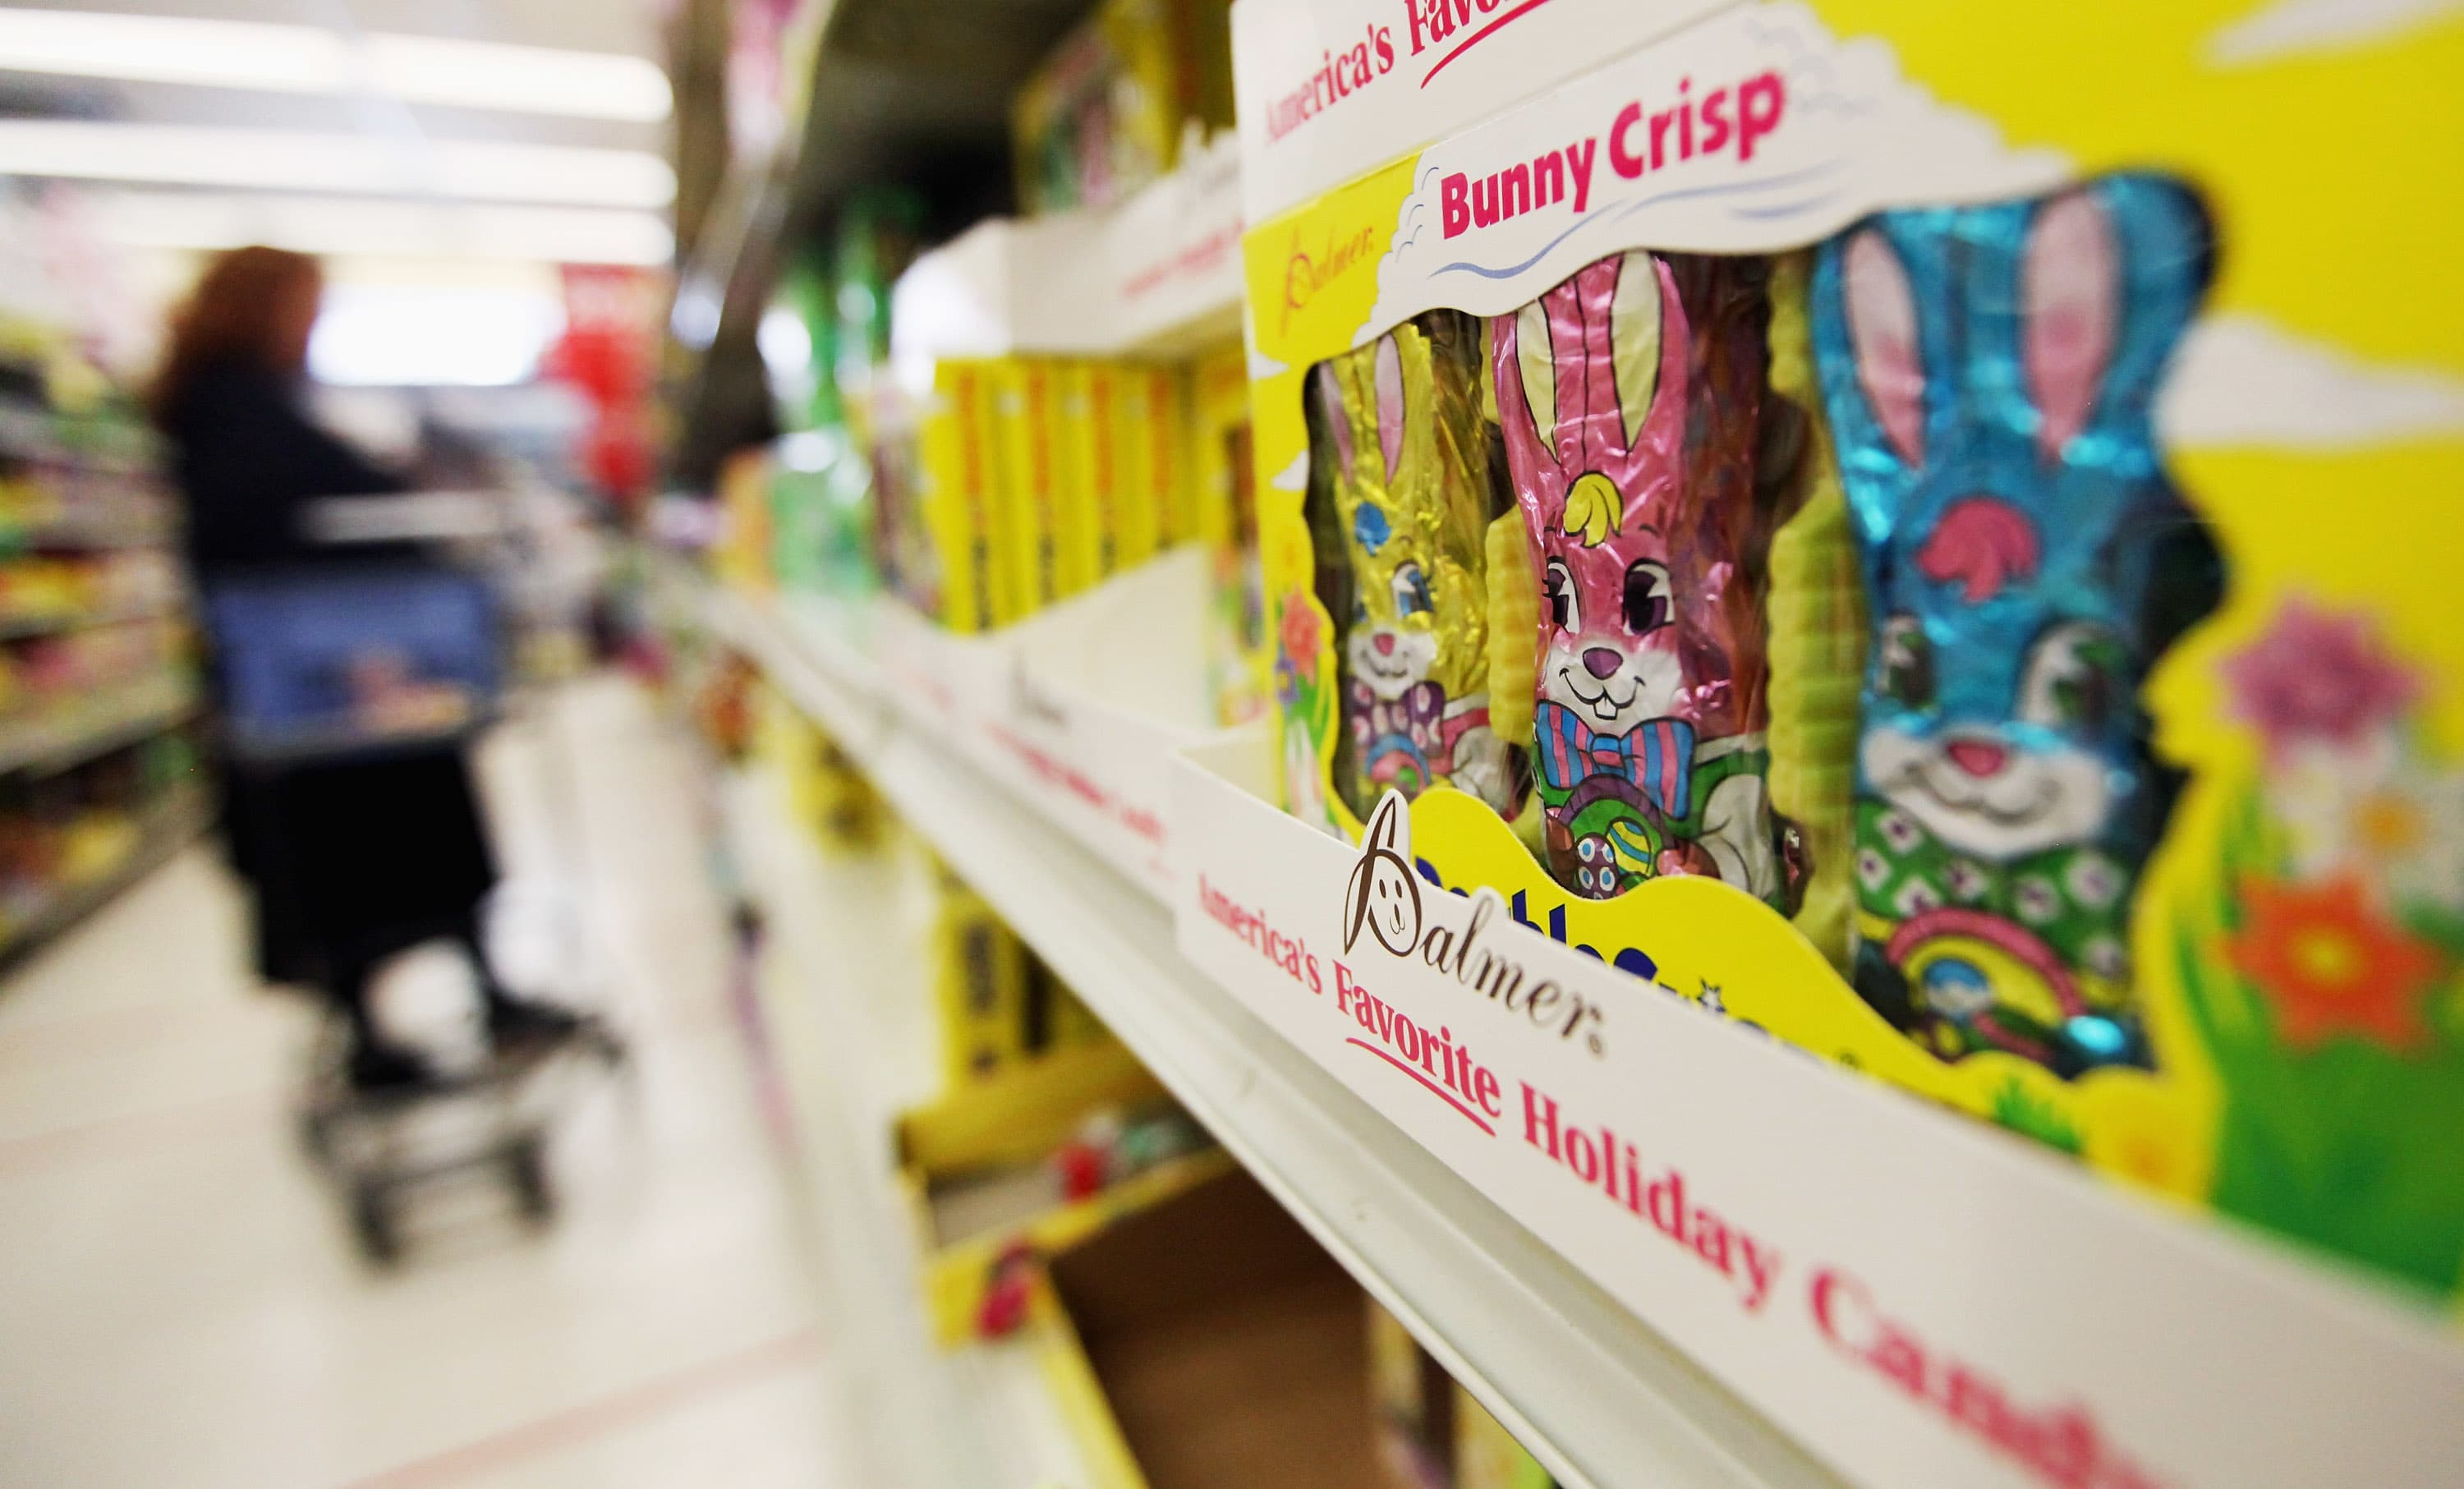 Parents look to create a 'magical' Easter, despite coronavirus restrictions